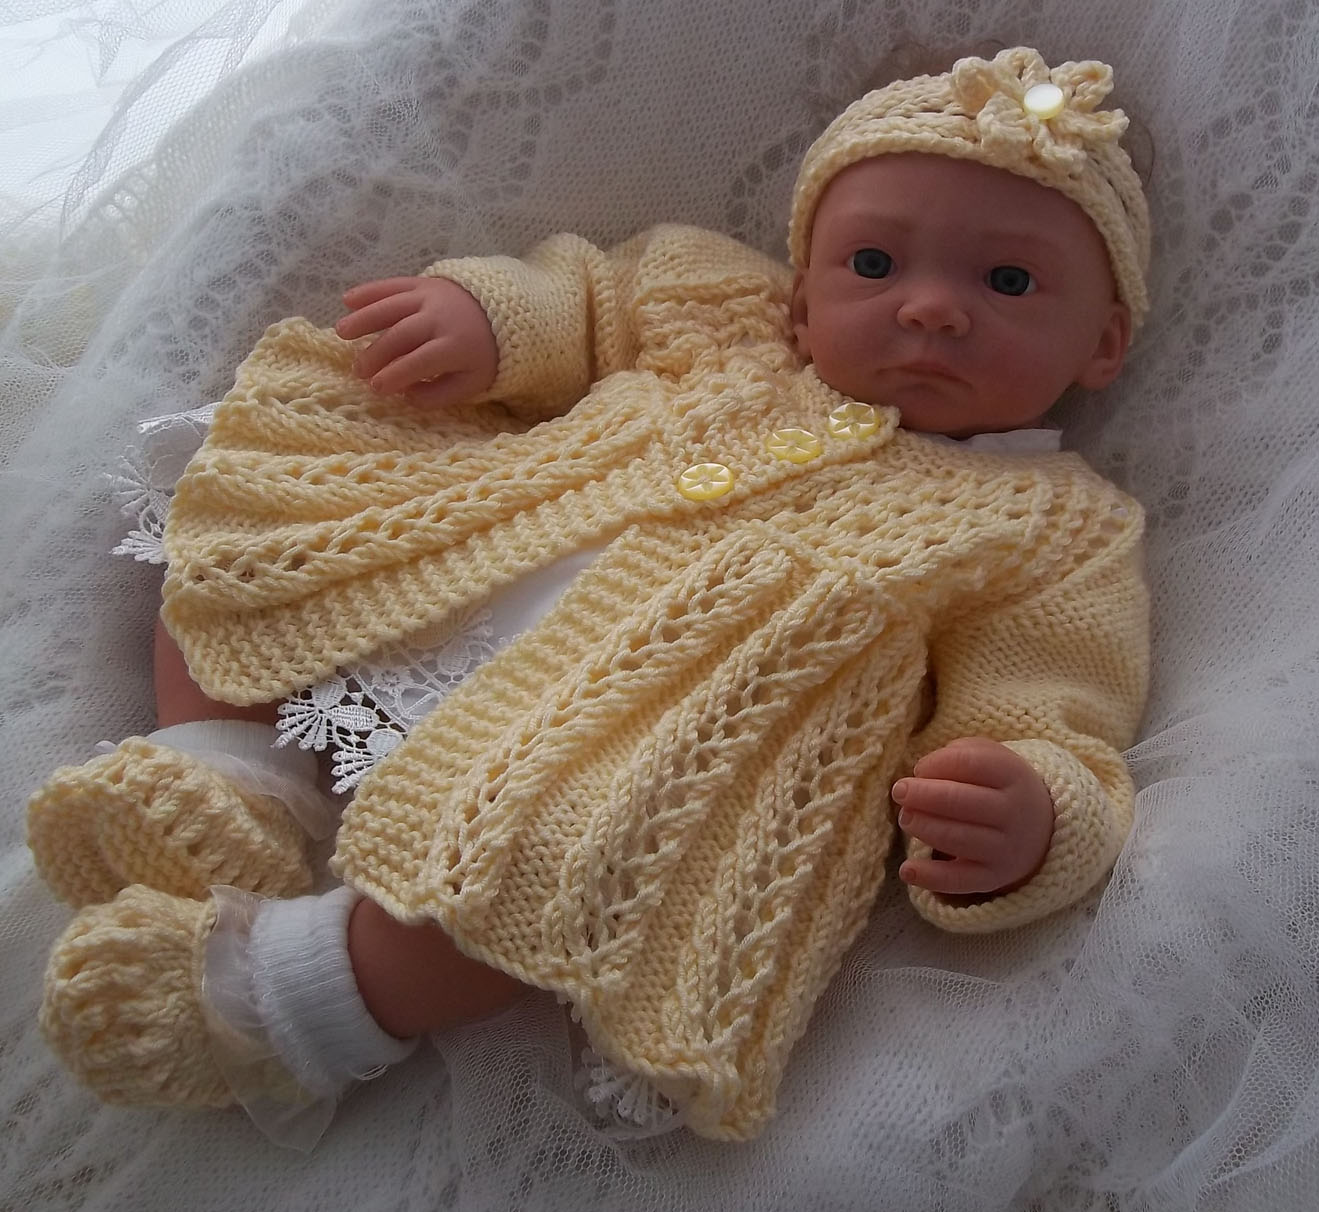 Find Knitting Patterns For Free Online